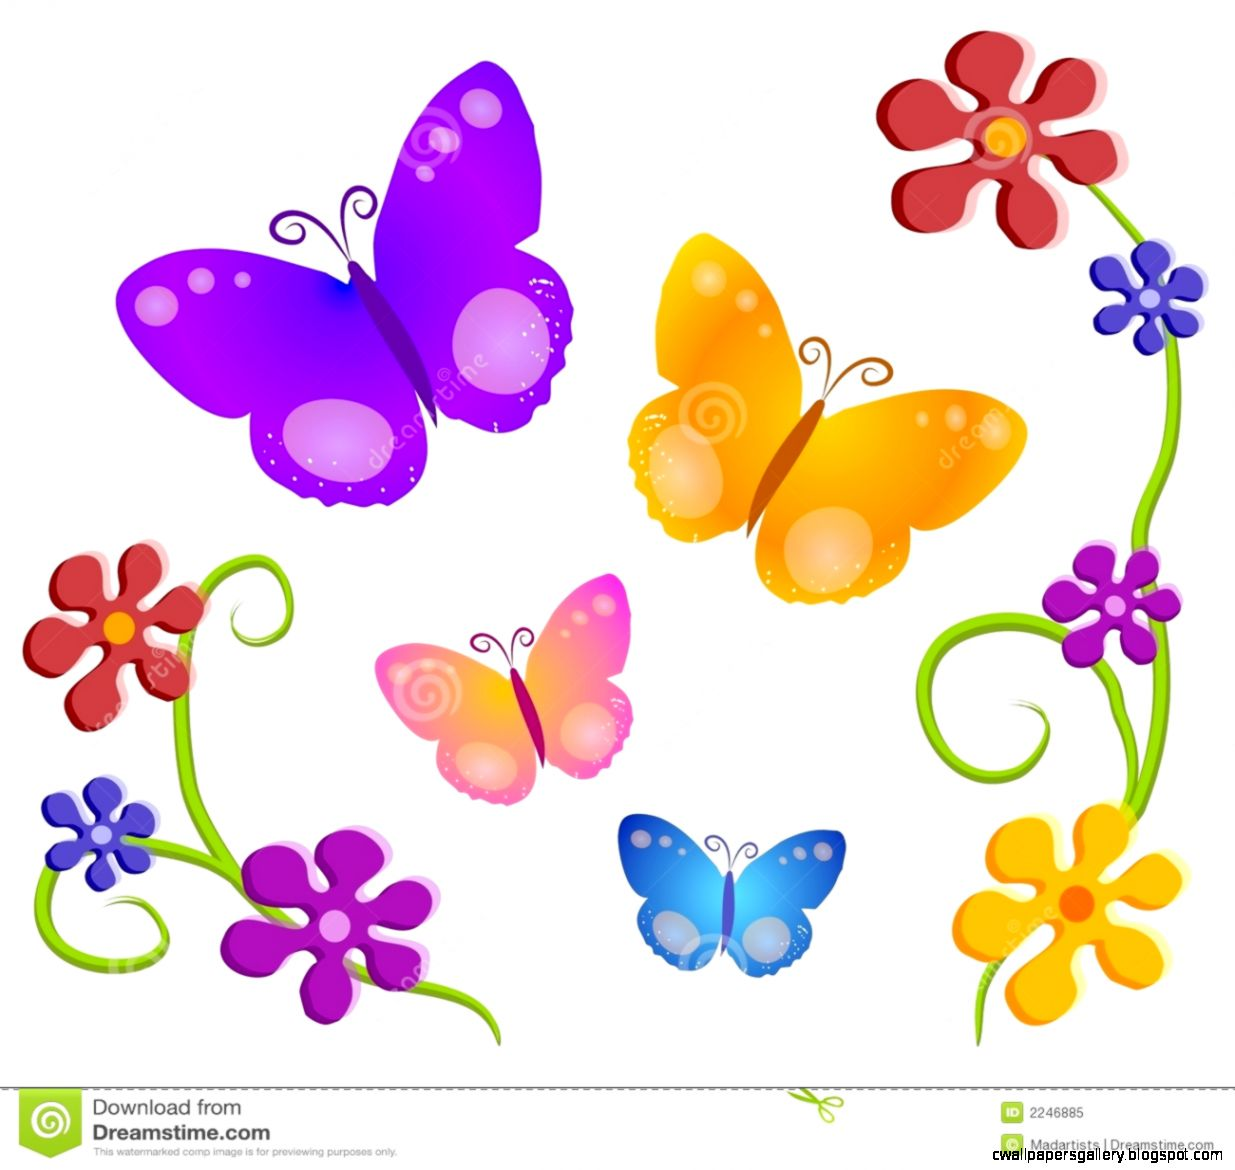 Butterfly Flowers Clip Art 01 Royalty Free Stock Image   Image